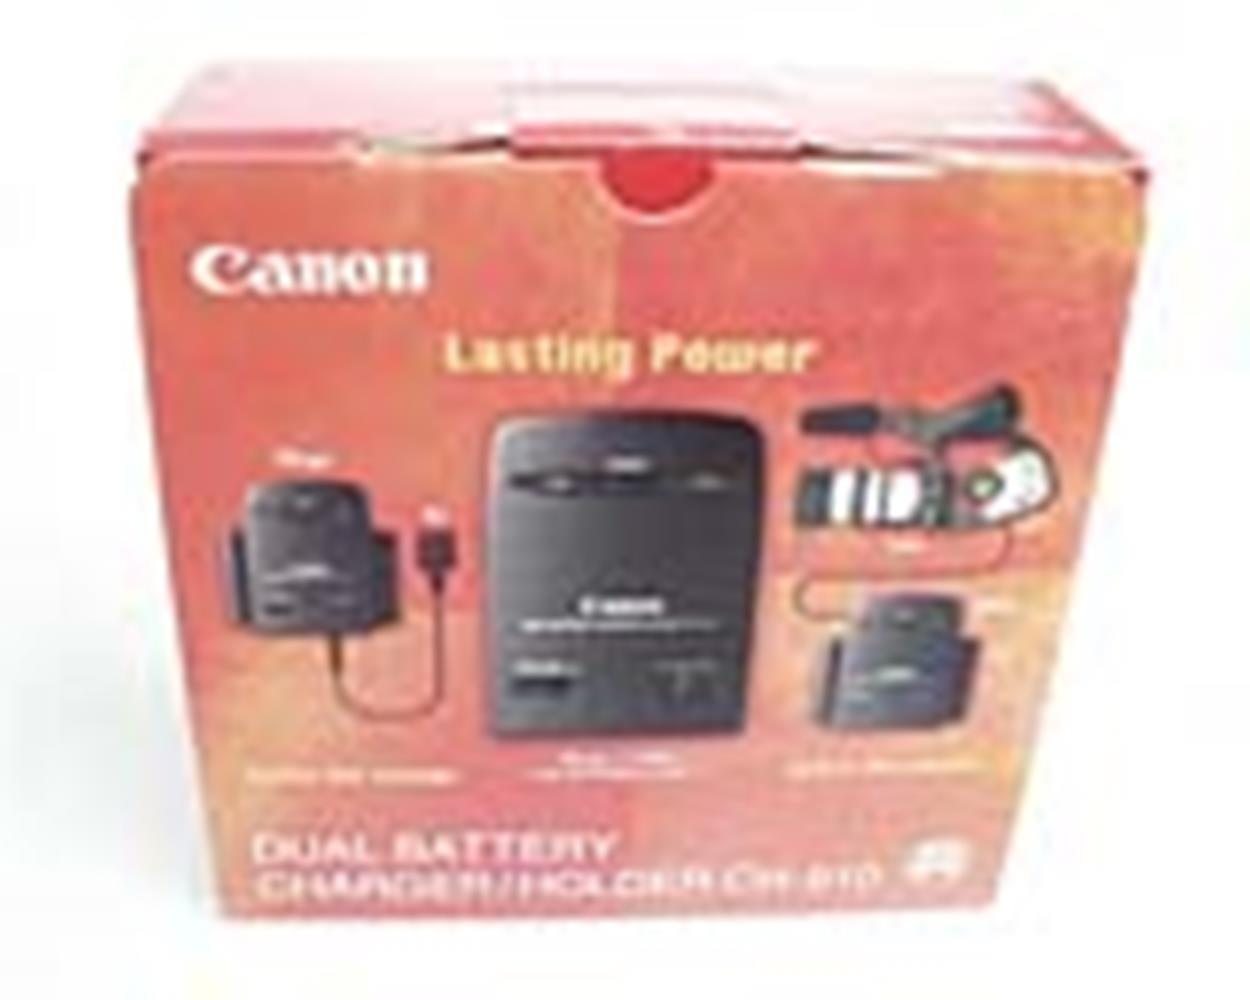 CANON CH910 DUAL BATTERY HOLDER (DV CAM)